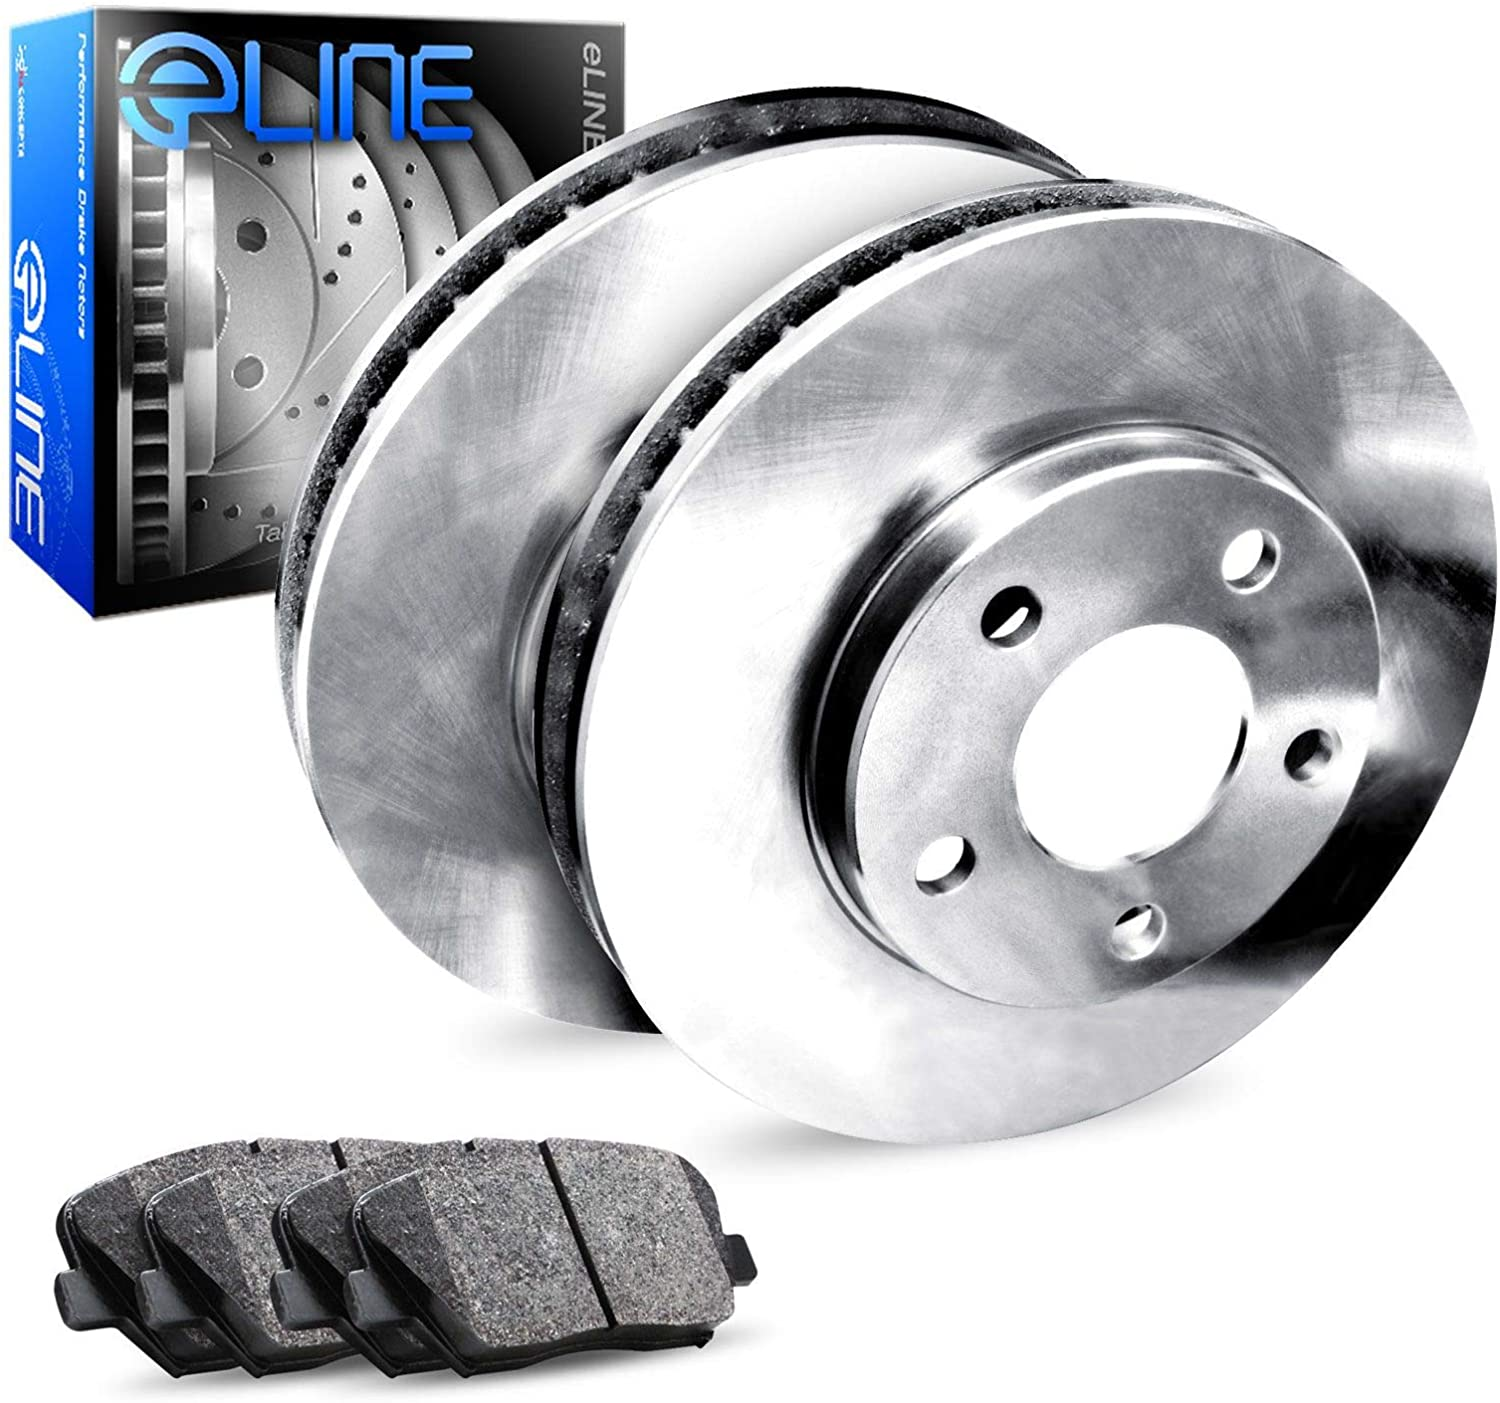 Rear Coated Drilled Slotted Disc Brake Rotors And Ceramic Pads Kit For Hyundai Accent Kia Rio